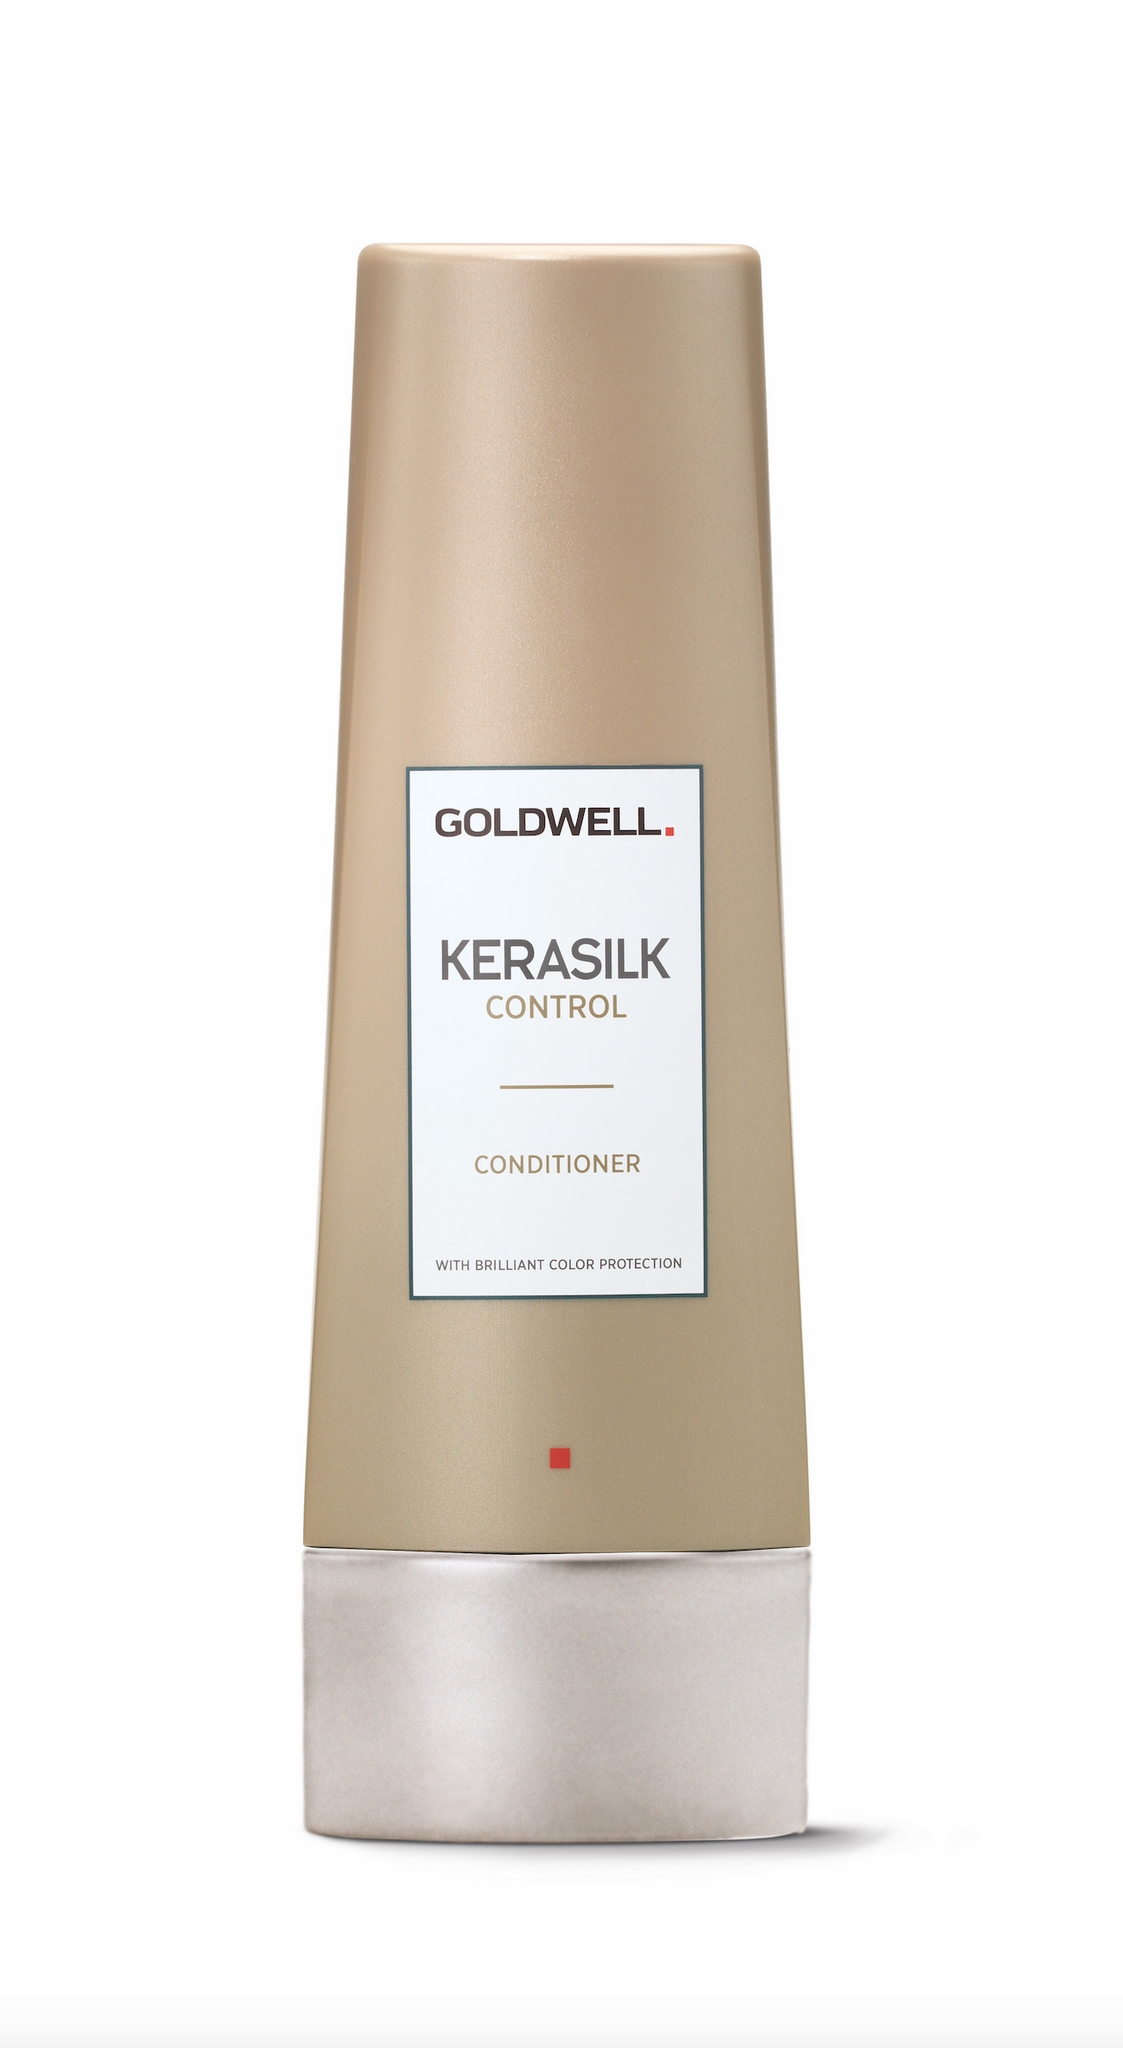 Kerasilk Control Conditioner - Lux Hair Beauty